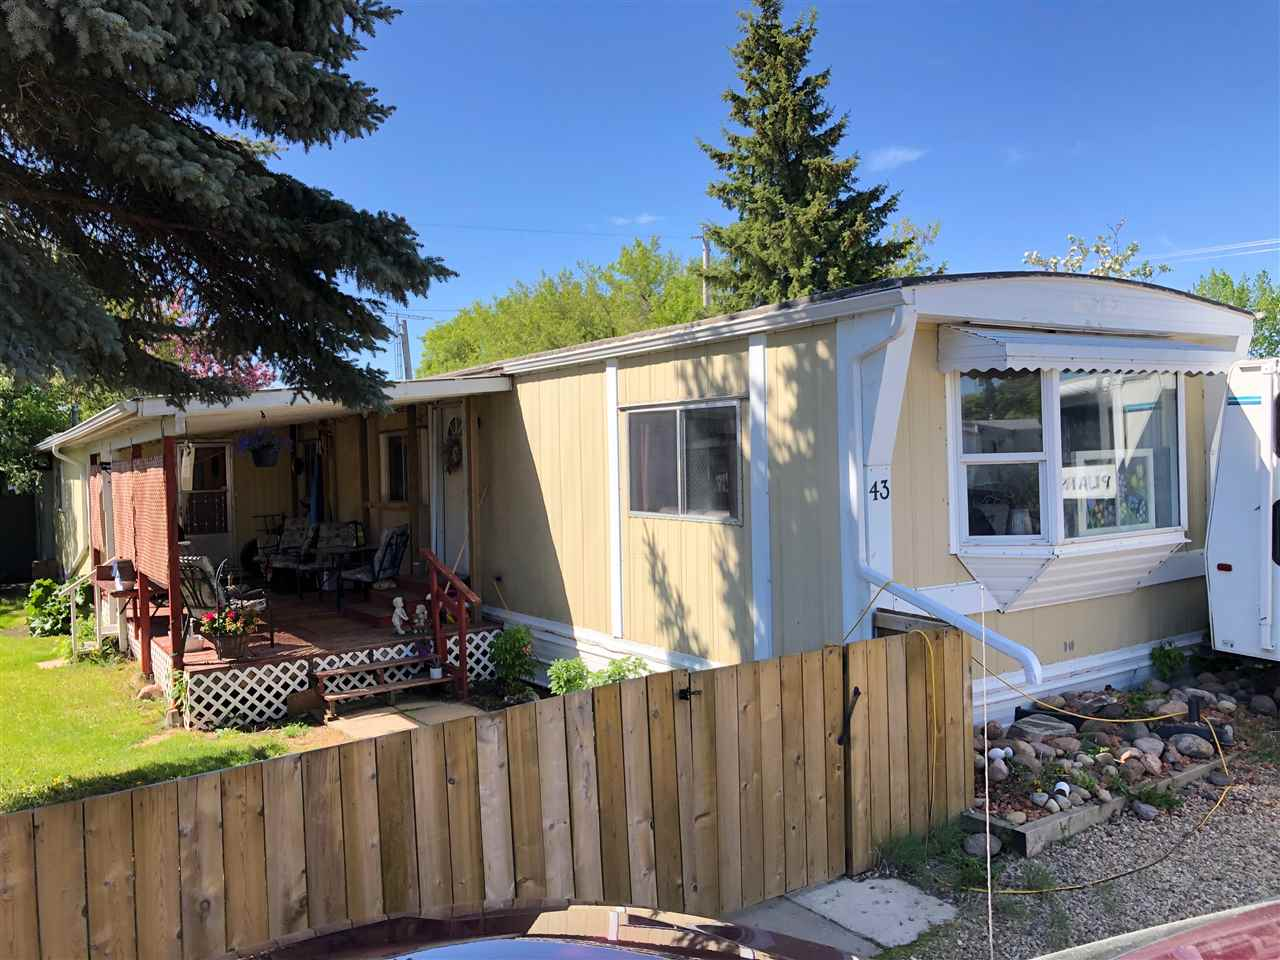 FEATURED LISTING: #43 9501 104 Avenue Westlock